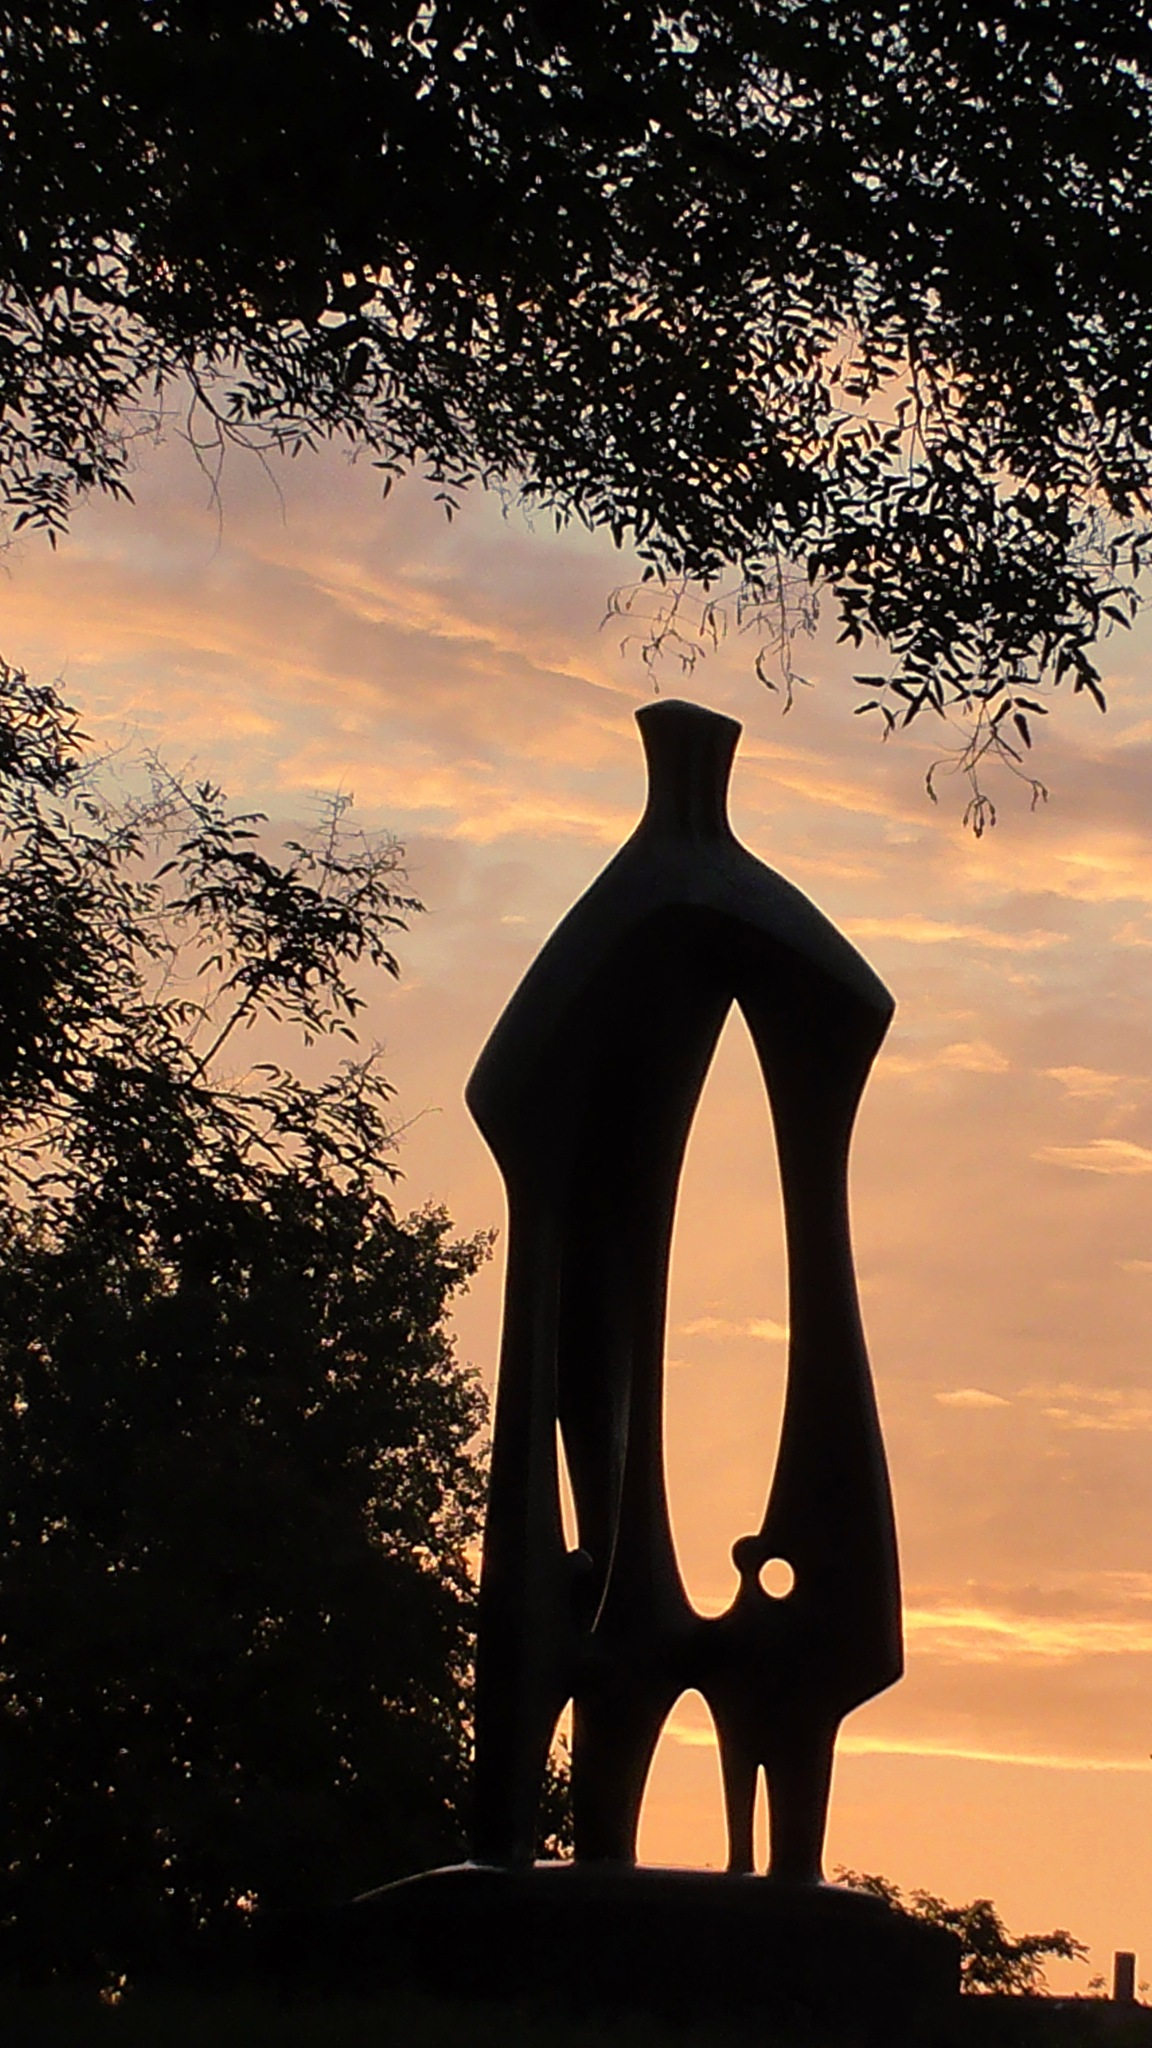 statue in dawn light by evakalocsay